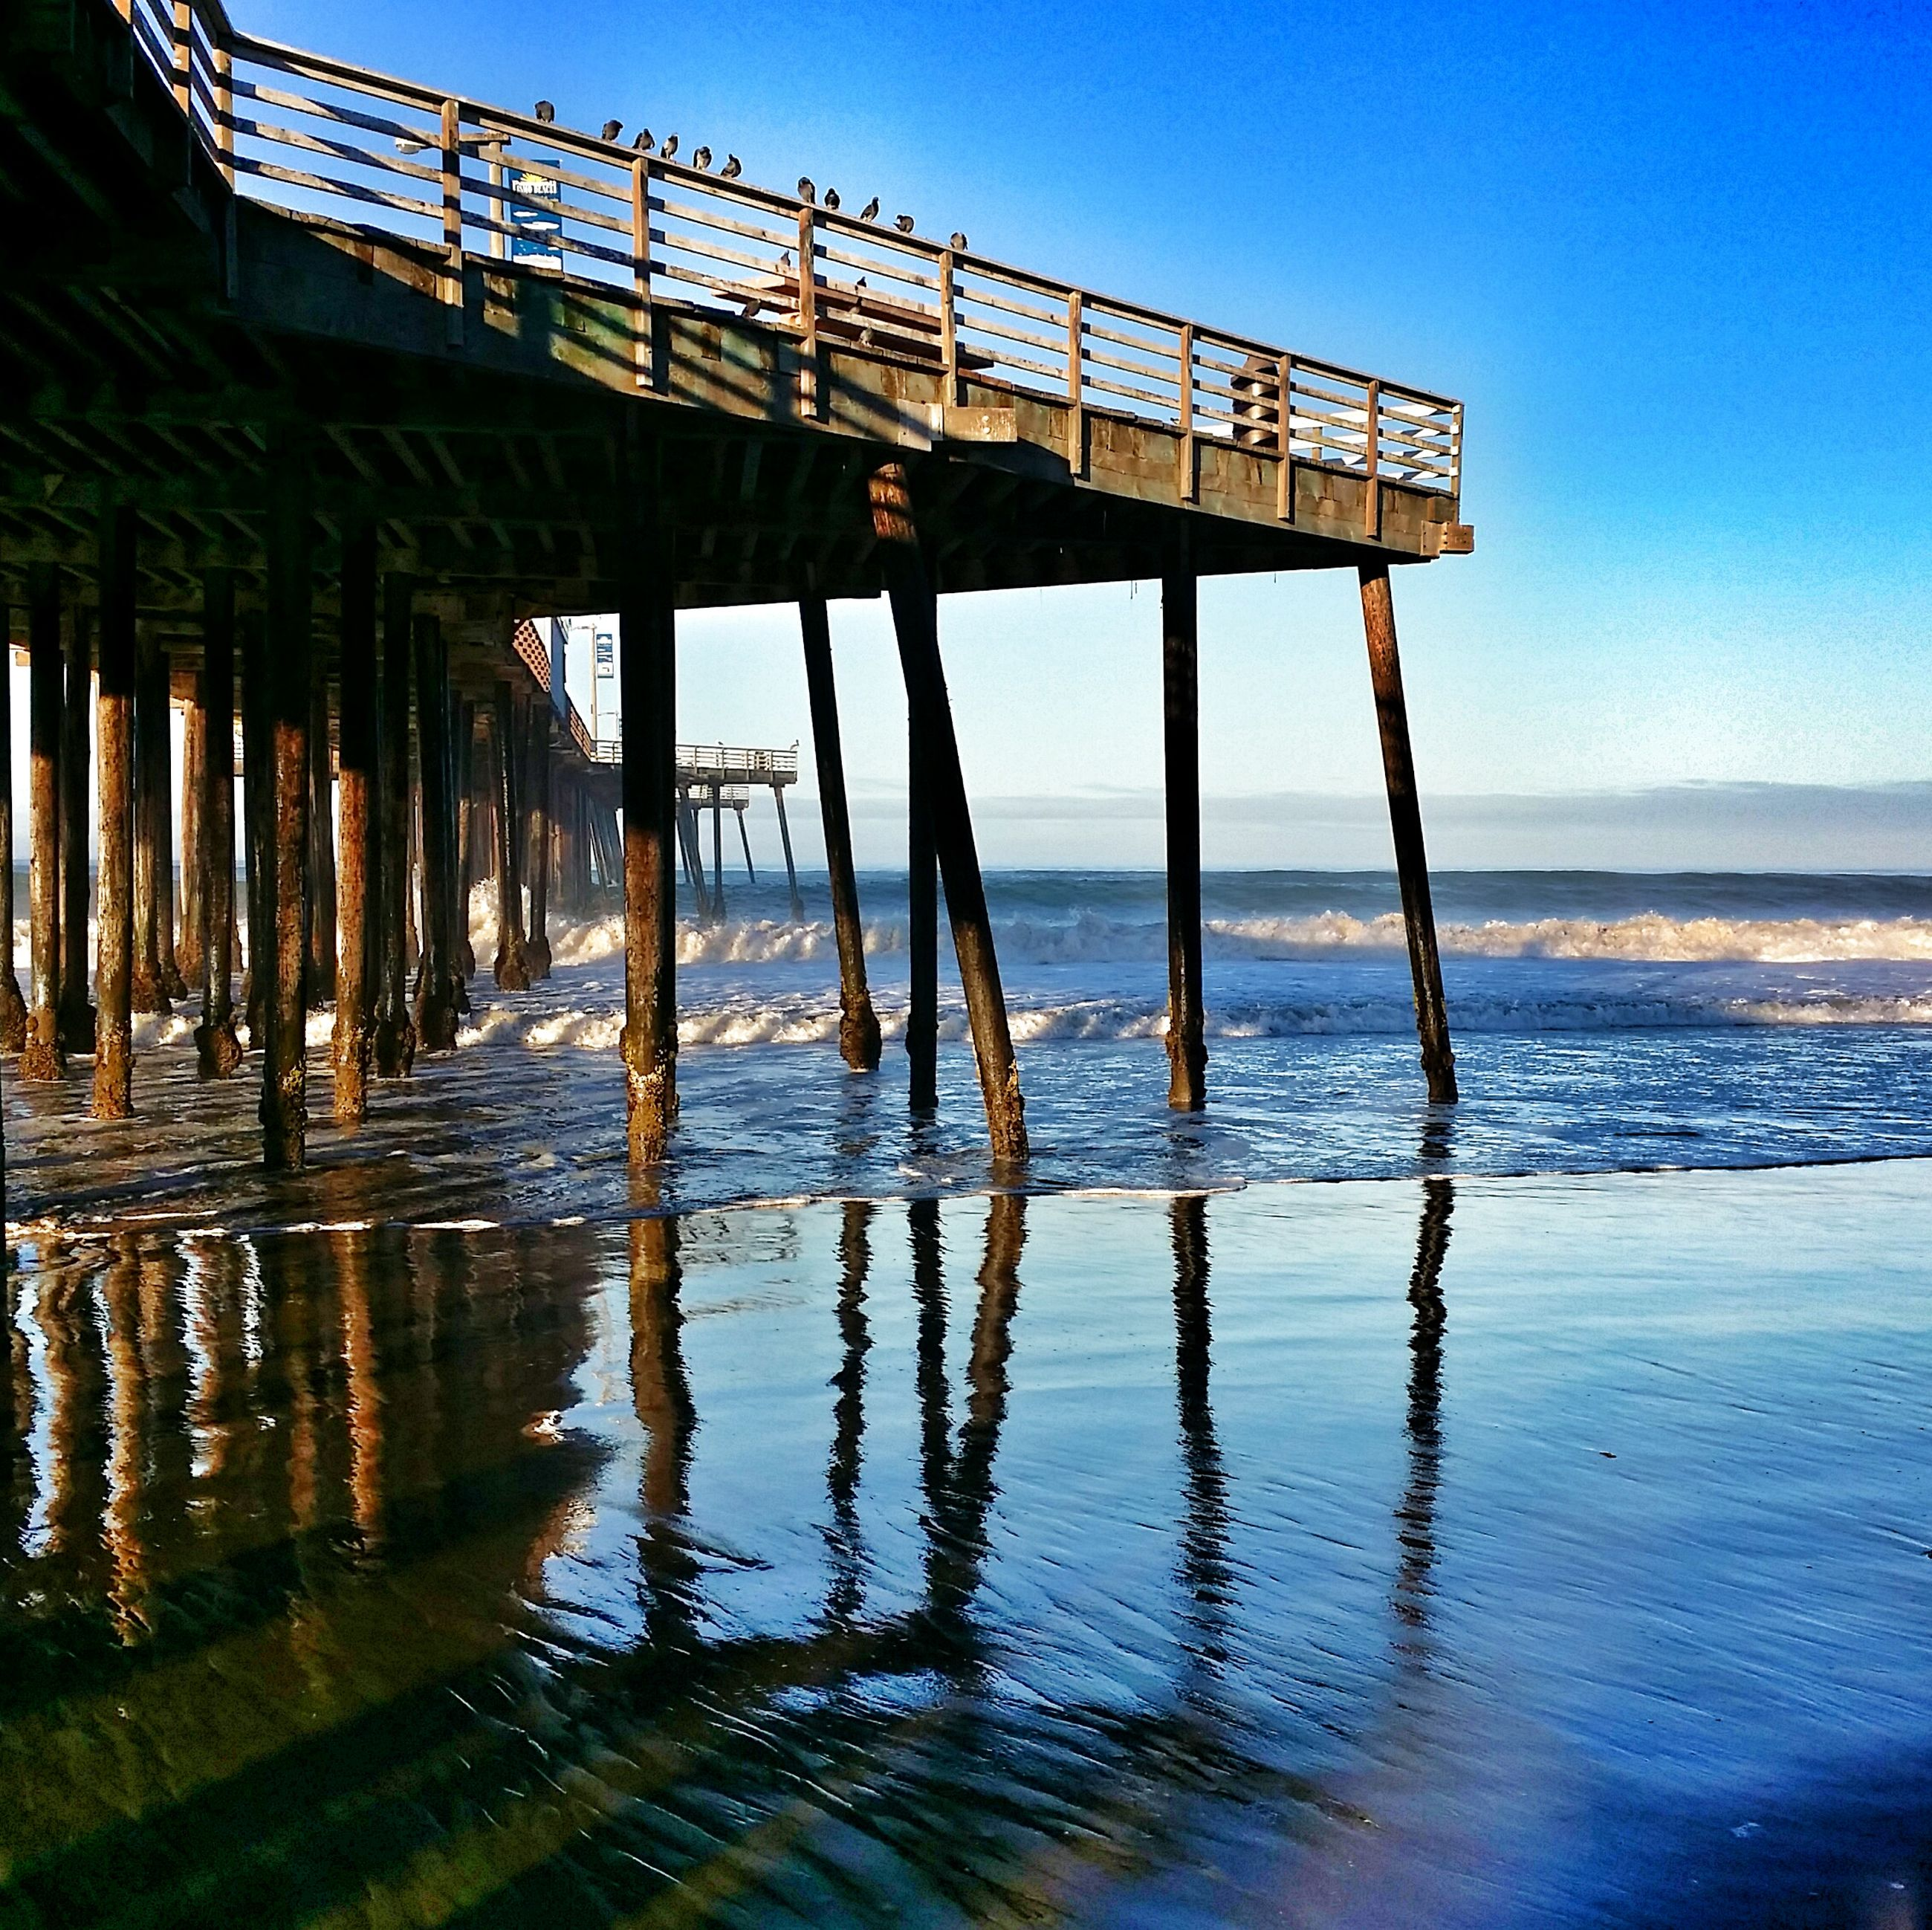 water, sea, beach, sky, horizon over water, pier, clear sky, tranquility, nature, tranquil scene, reflection, built structure, shore, sunlight, wood - material, day, outdoors, connection, rippled, no people